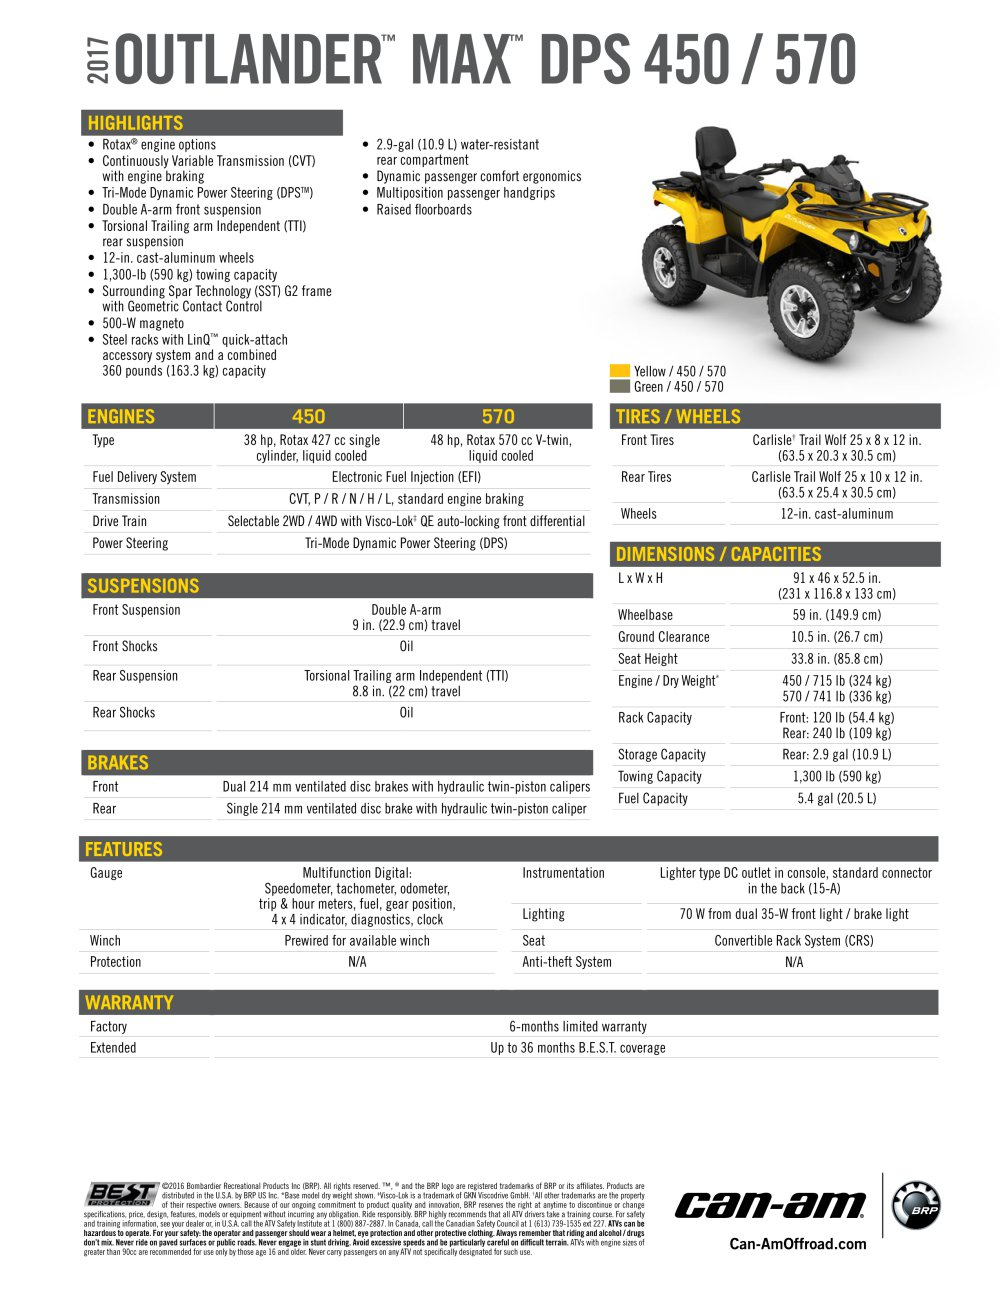 Outlander MAX DPS 450/570 - Can-Am - PDF Catalogue | Technical ...